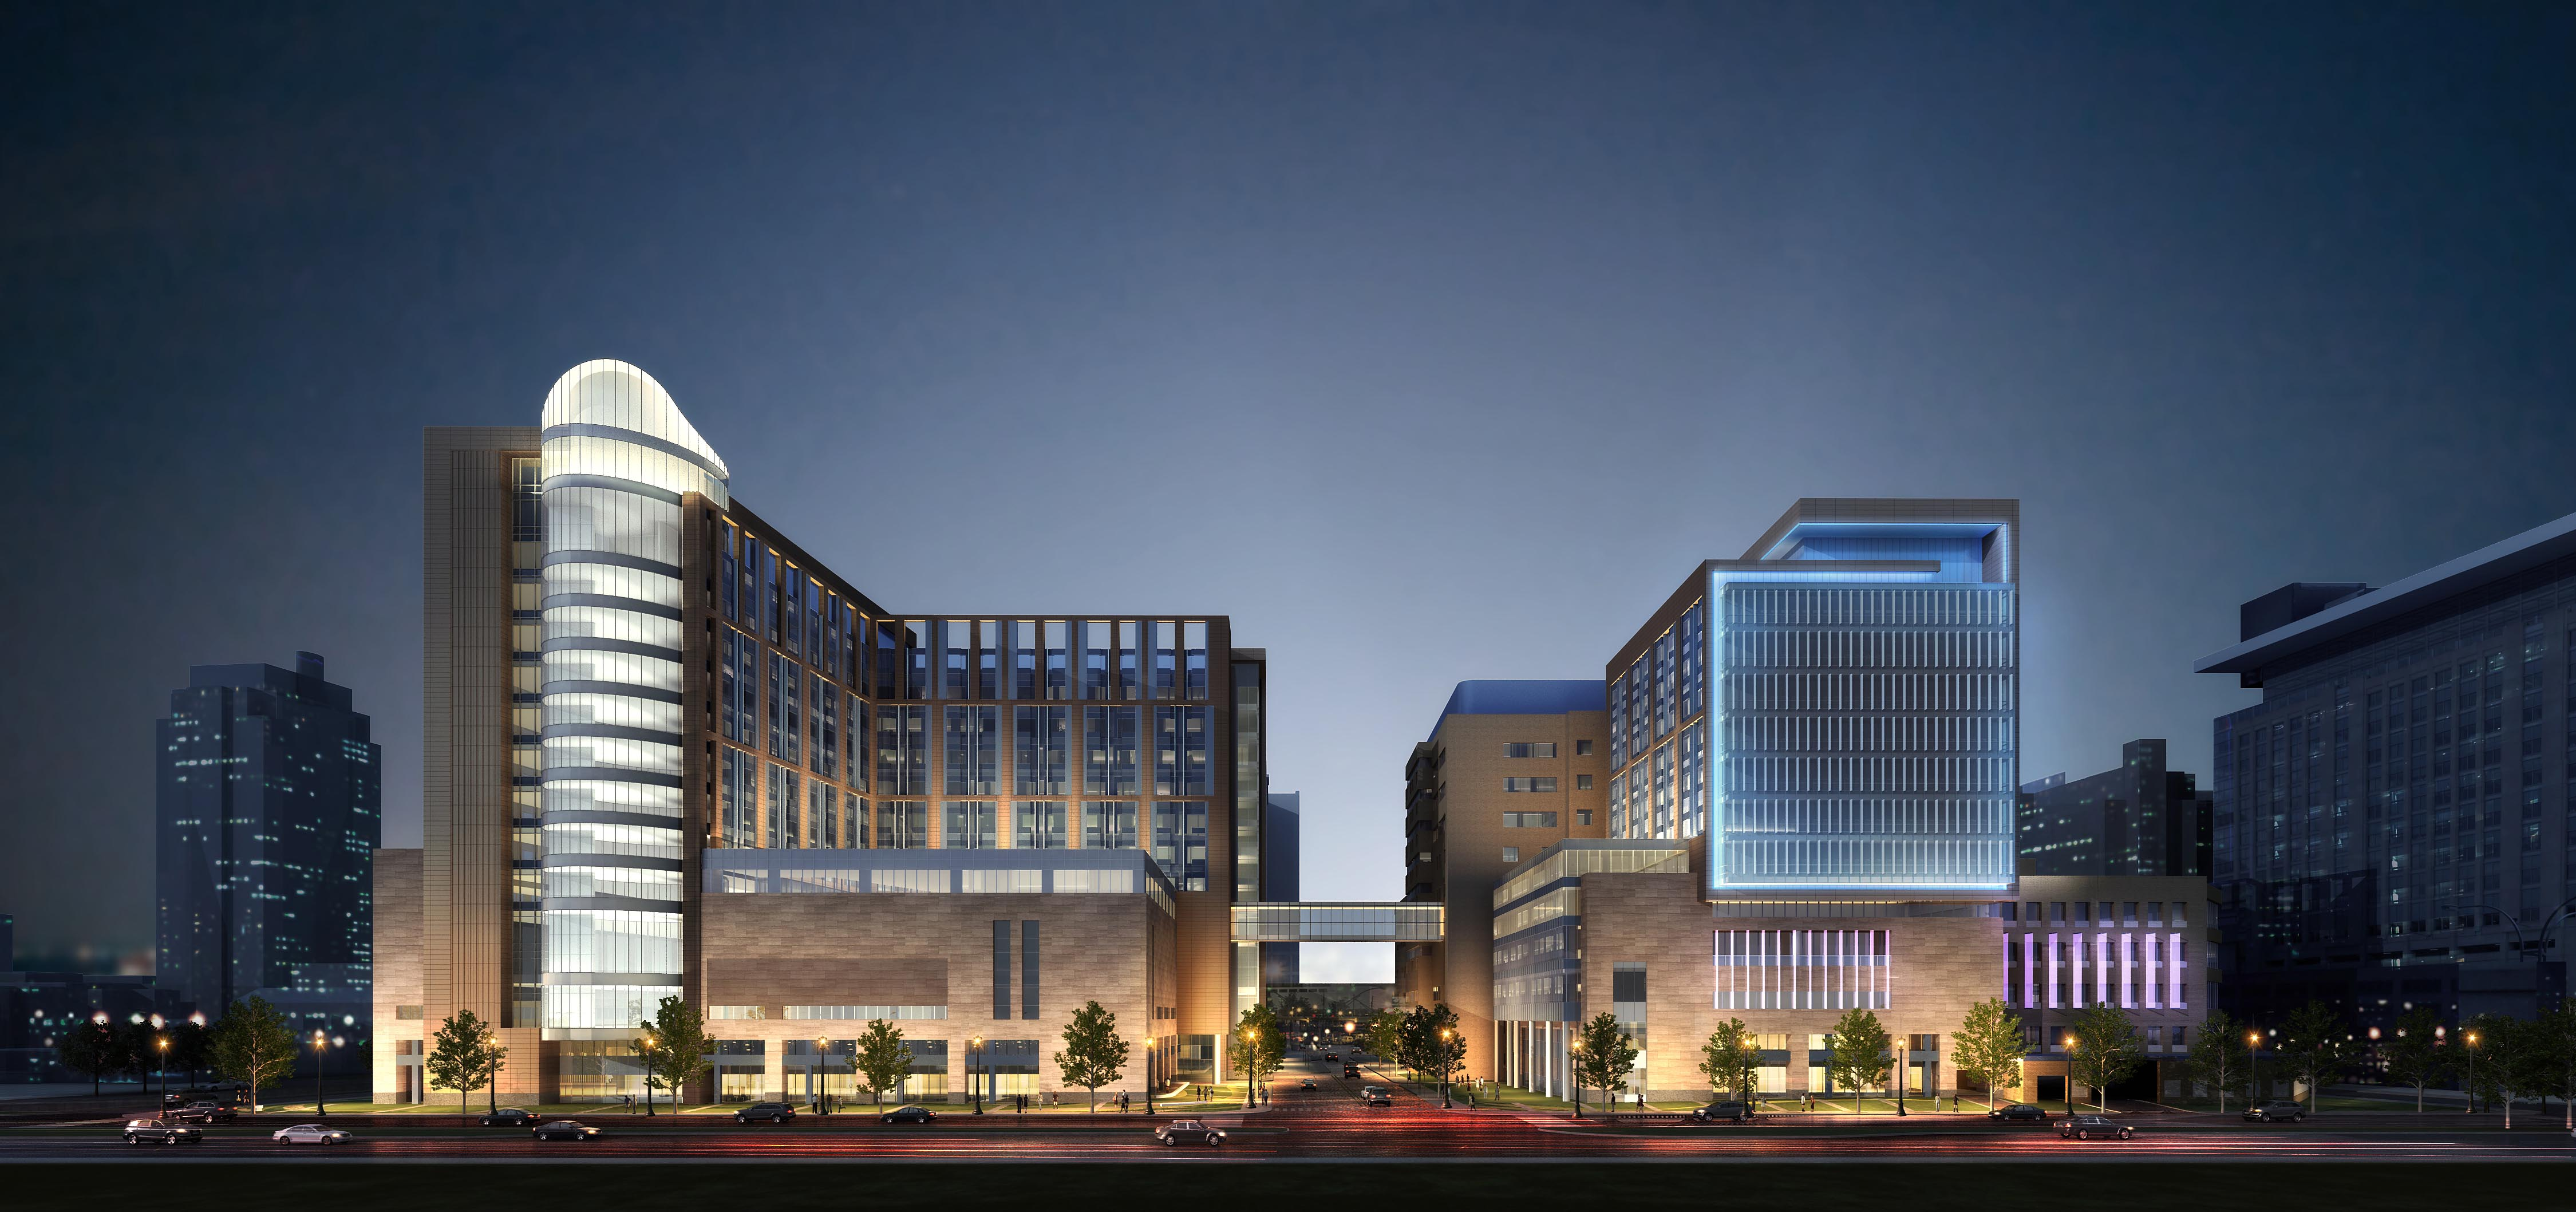 BJC, Children's Hospital Release Detailed Renderings of Three New Towers